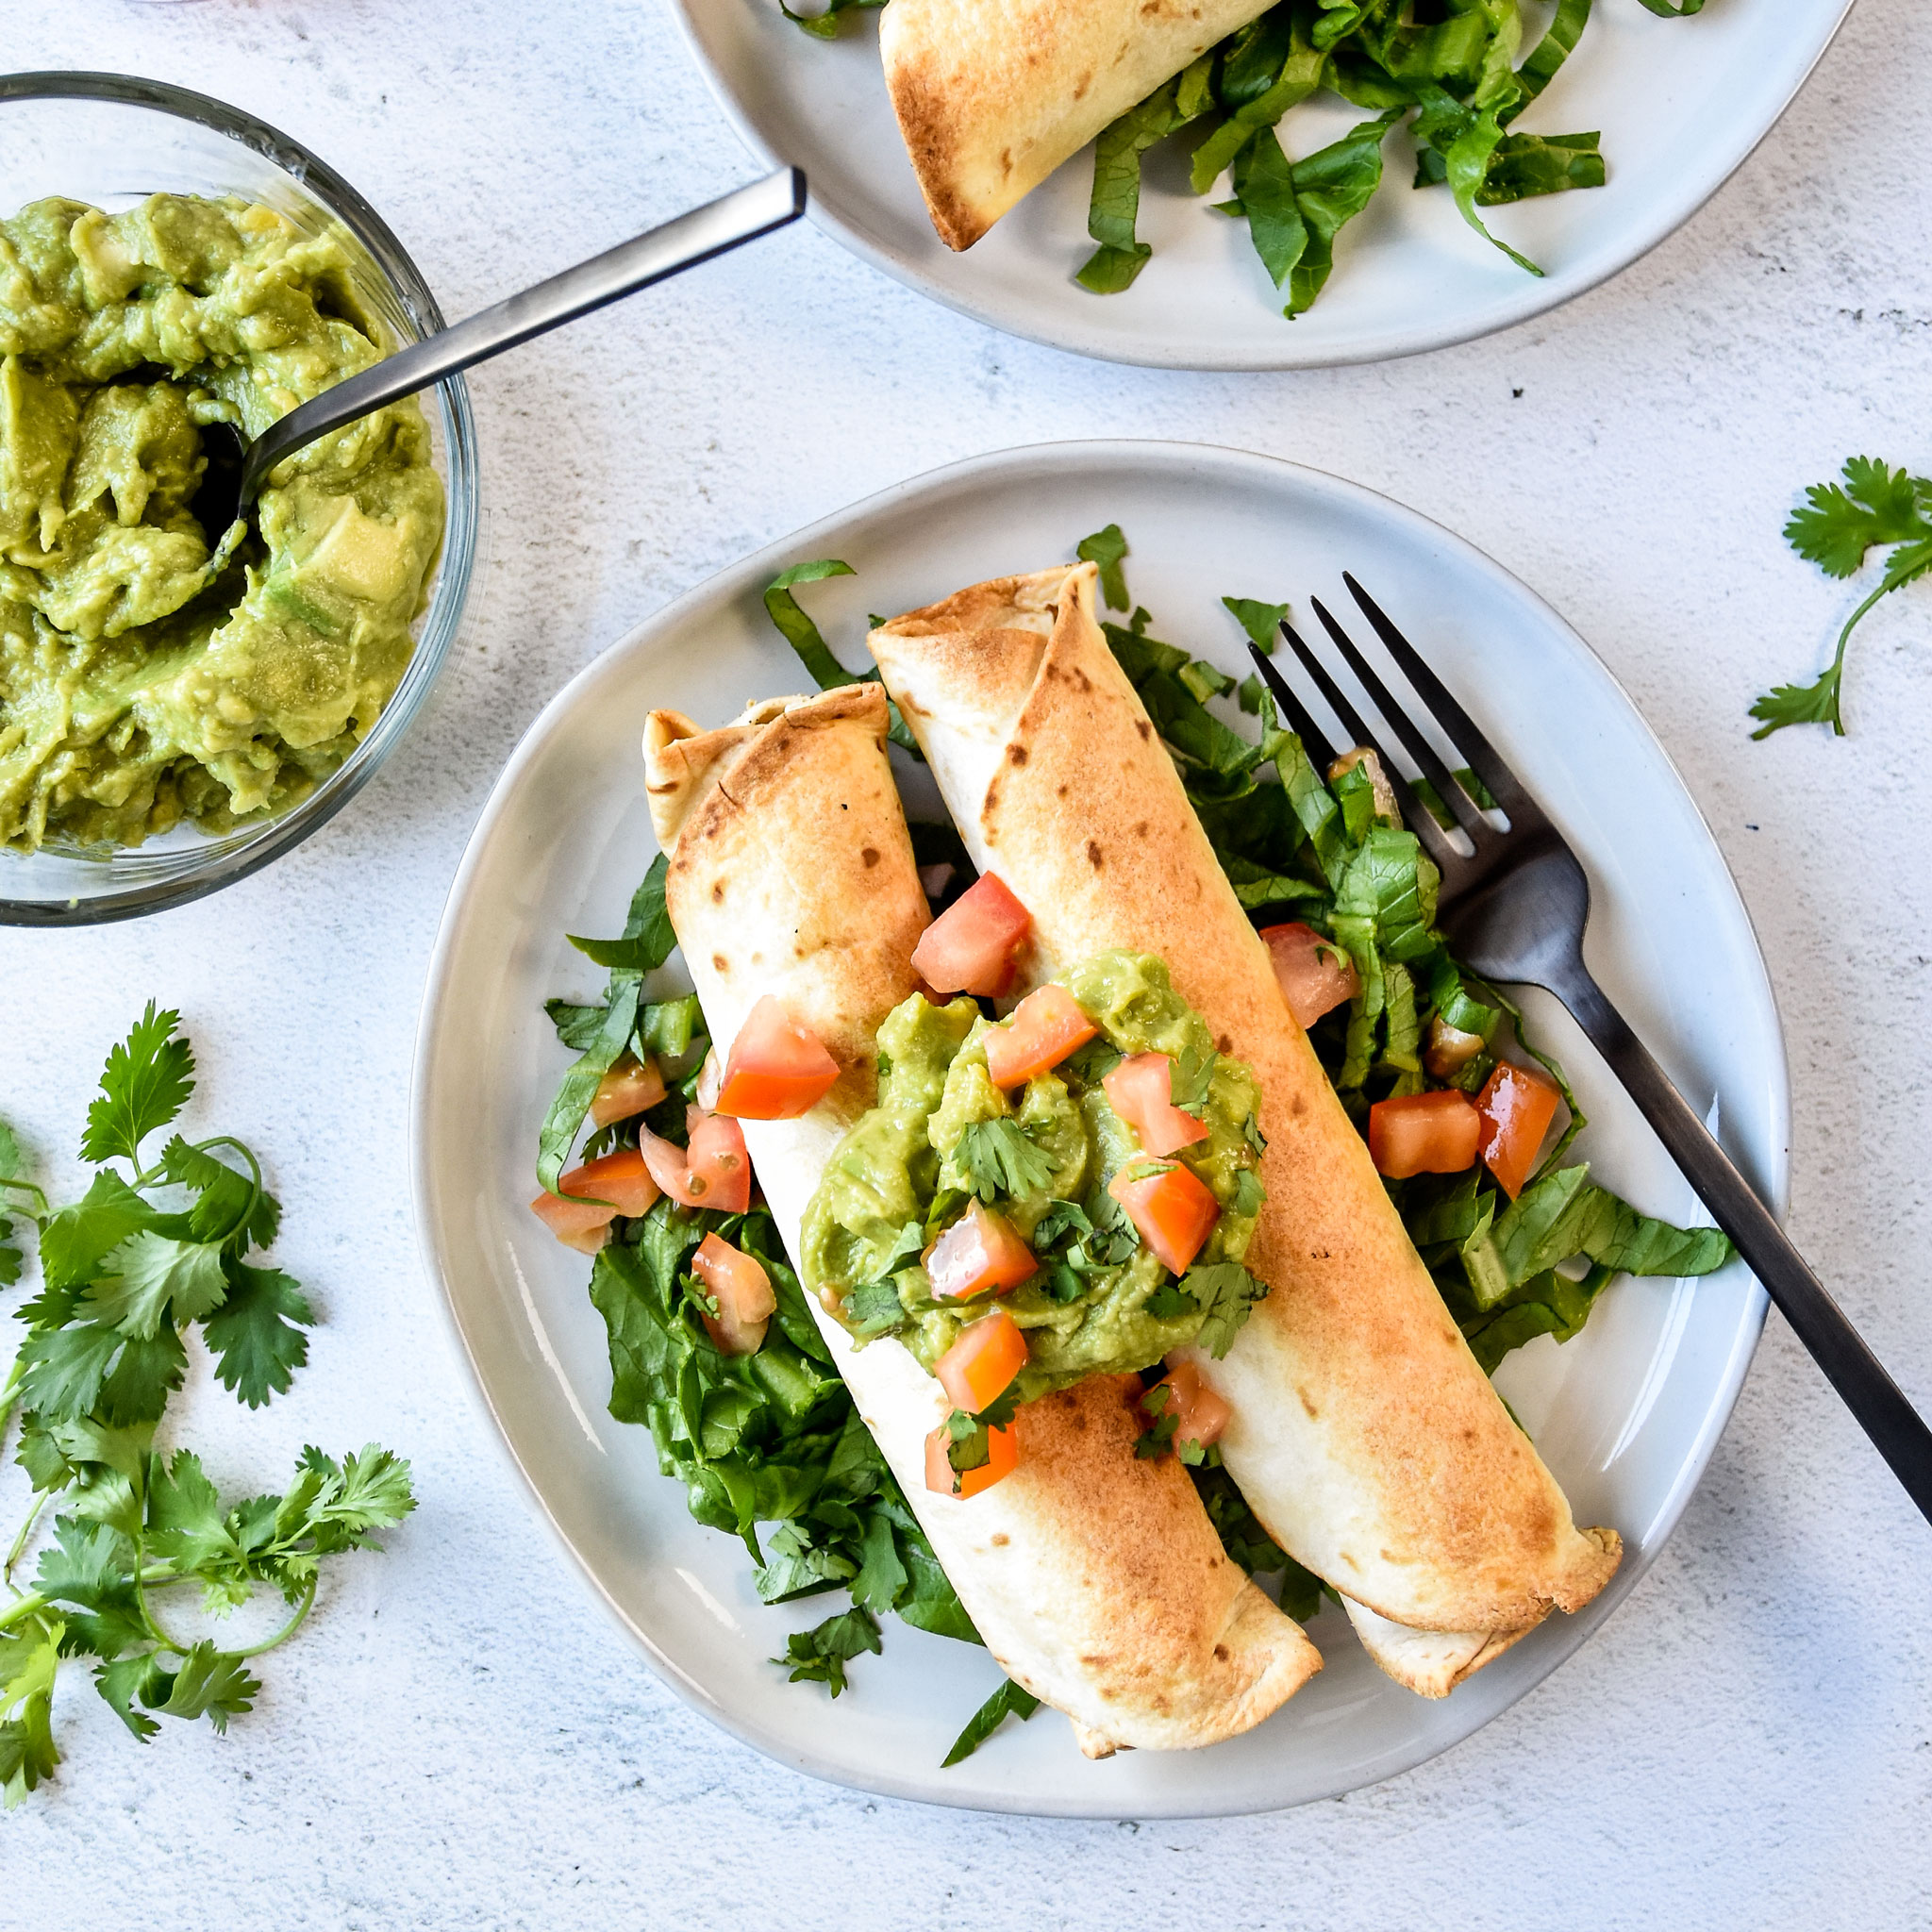 air fryer chicken taquitos made with small flour tortillas and topped with guacamole and tomatoes